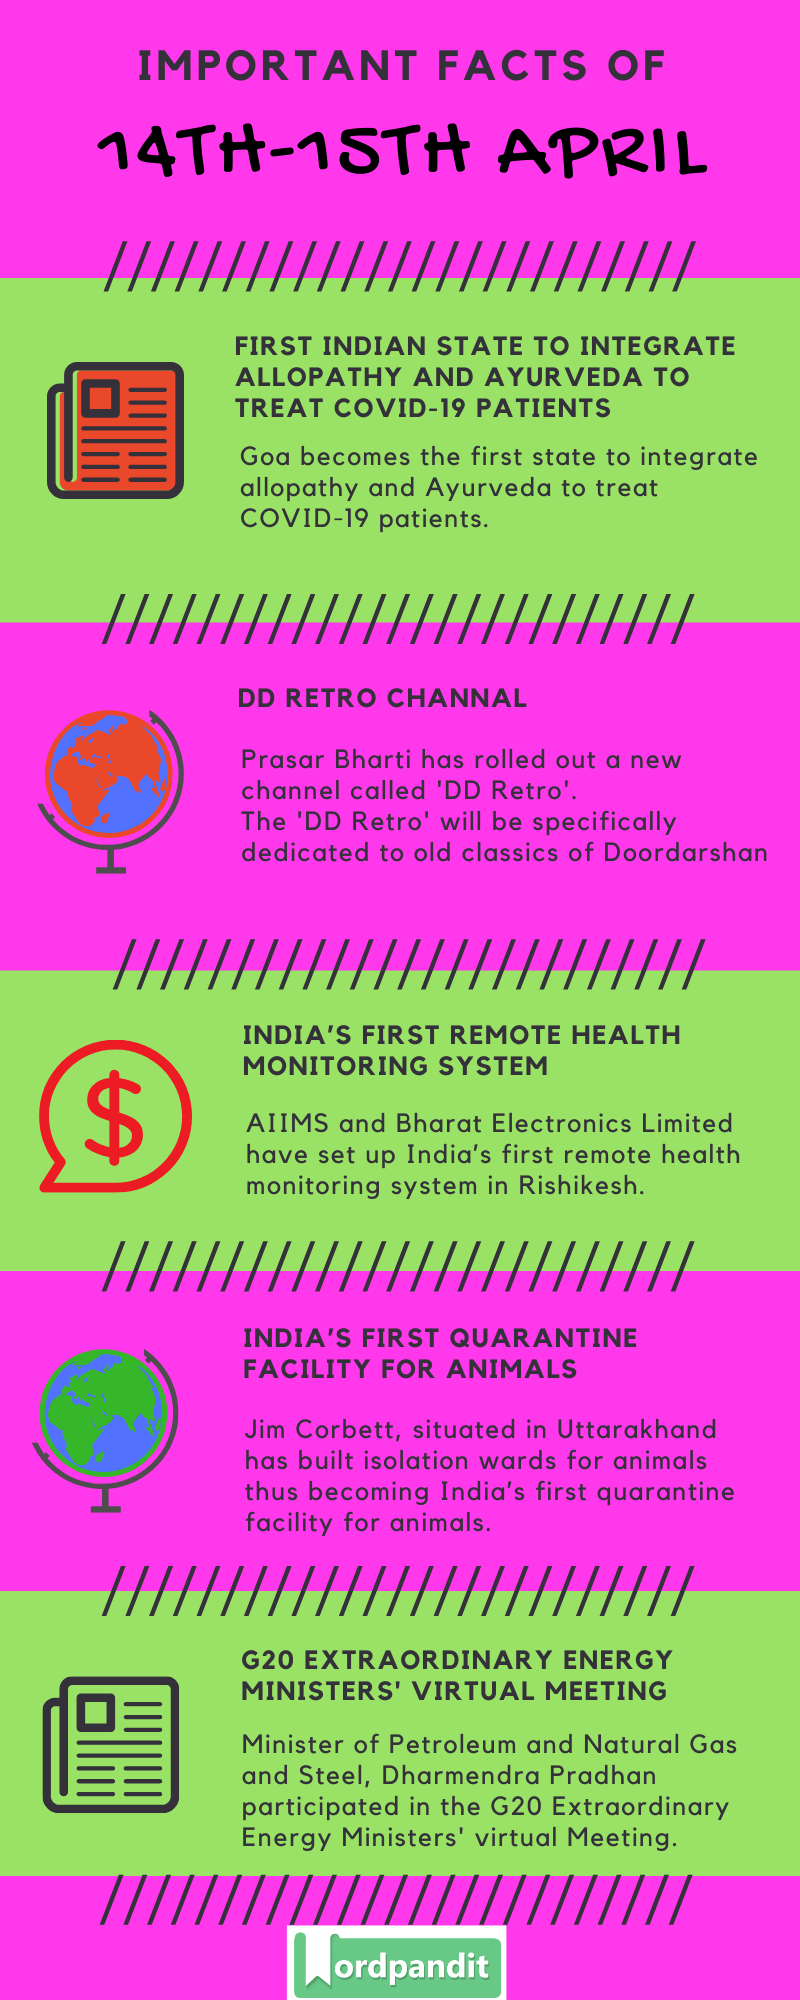 Daily Current Affairs 14 & 15 April 2020 Current Affairs Quiz 14 & 15 April 2020 Current Affairs Infographic